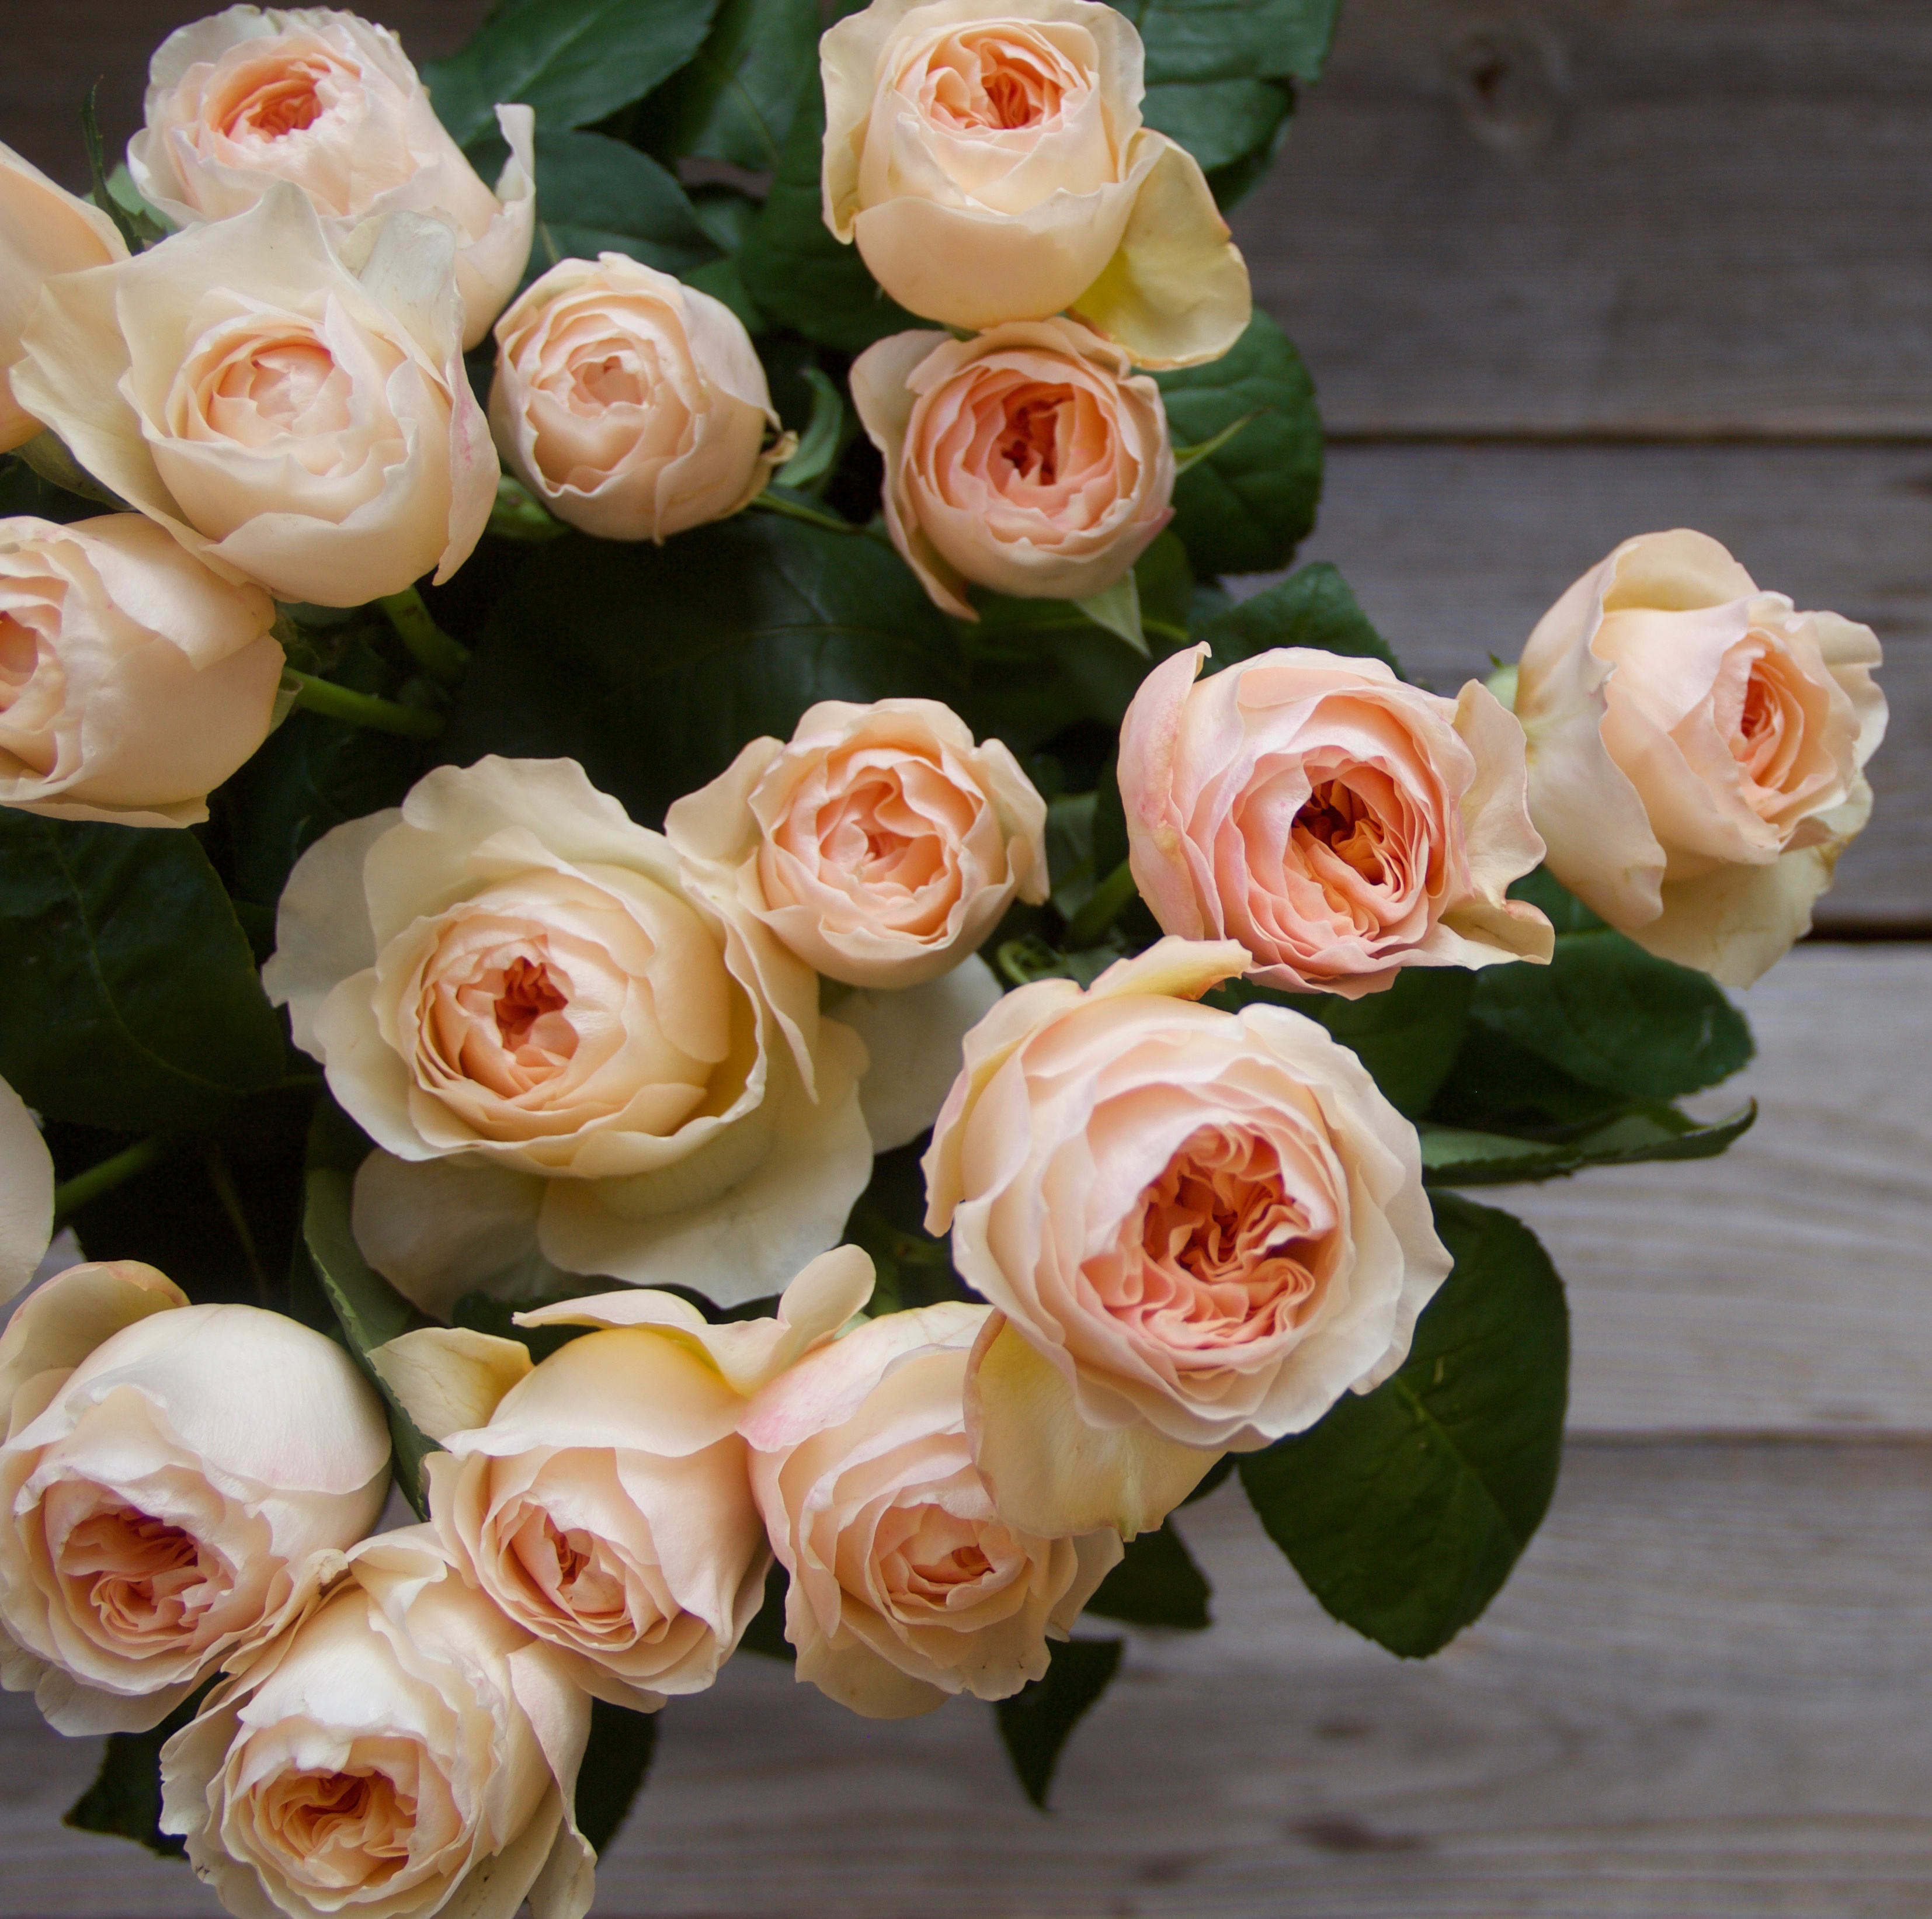 12 Garden Roses - Daily floral delivery from Botanica Floral Design